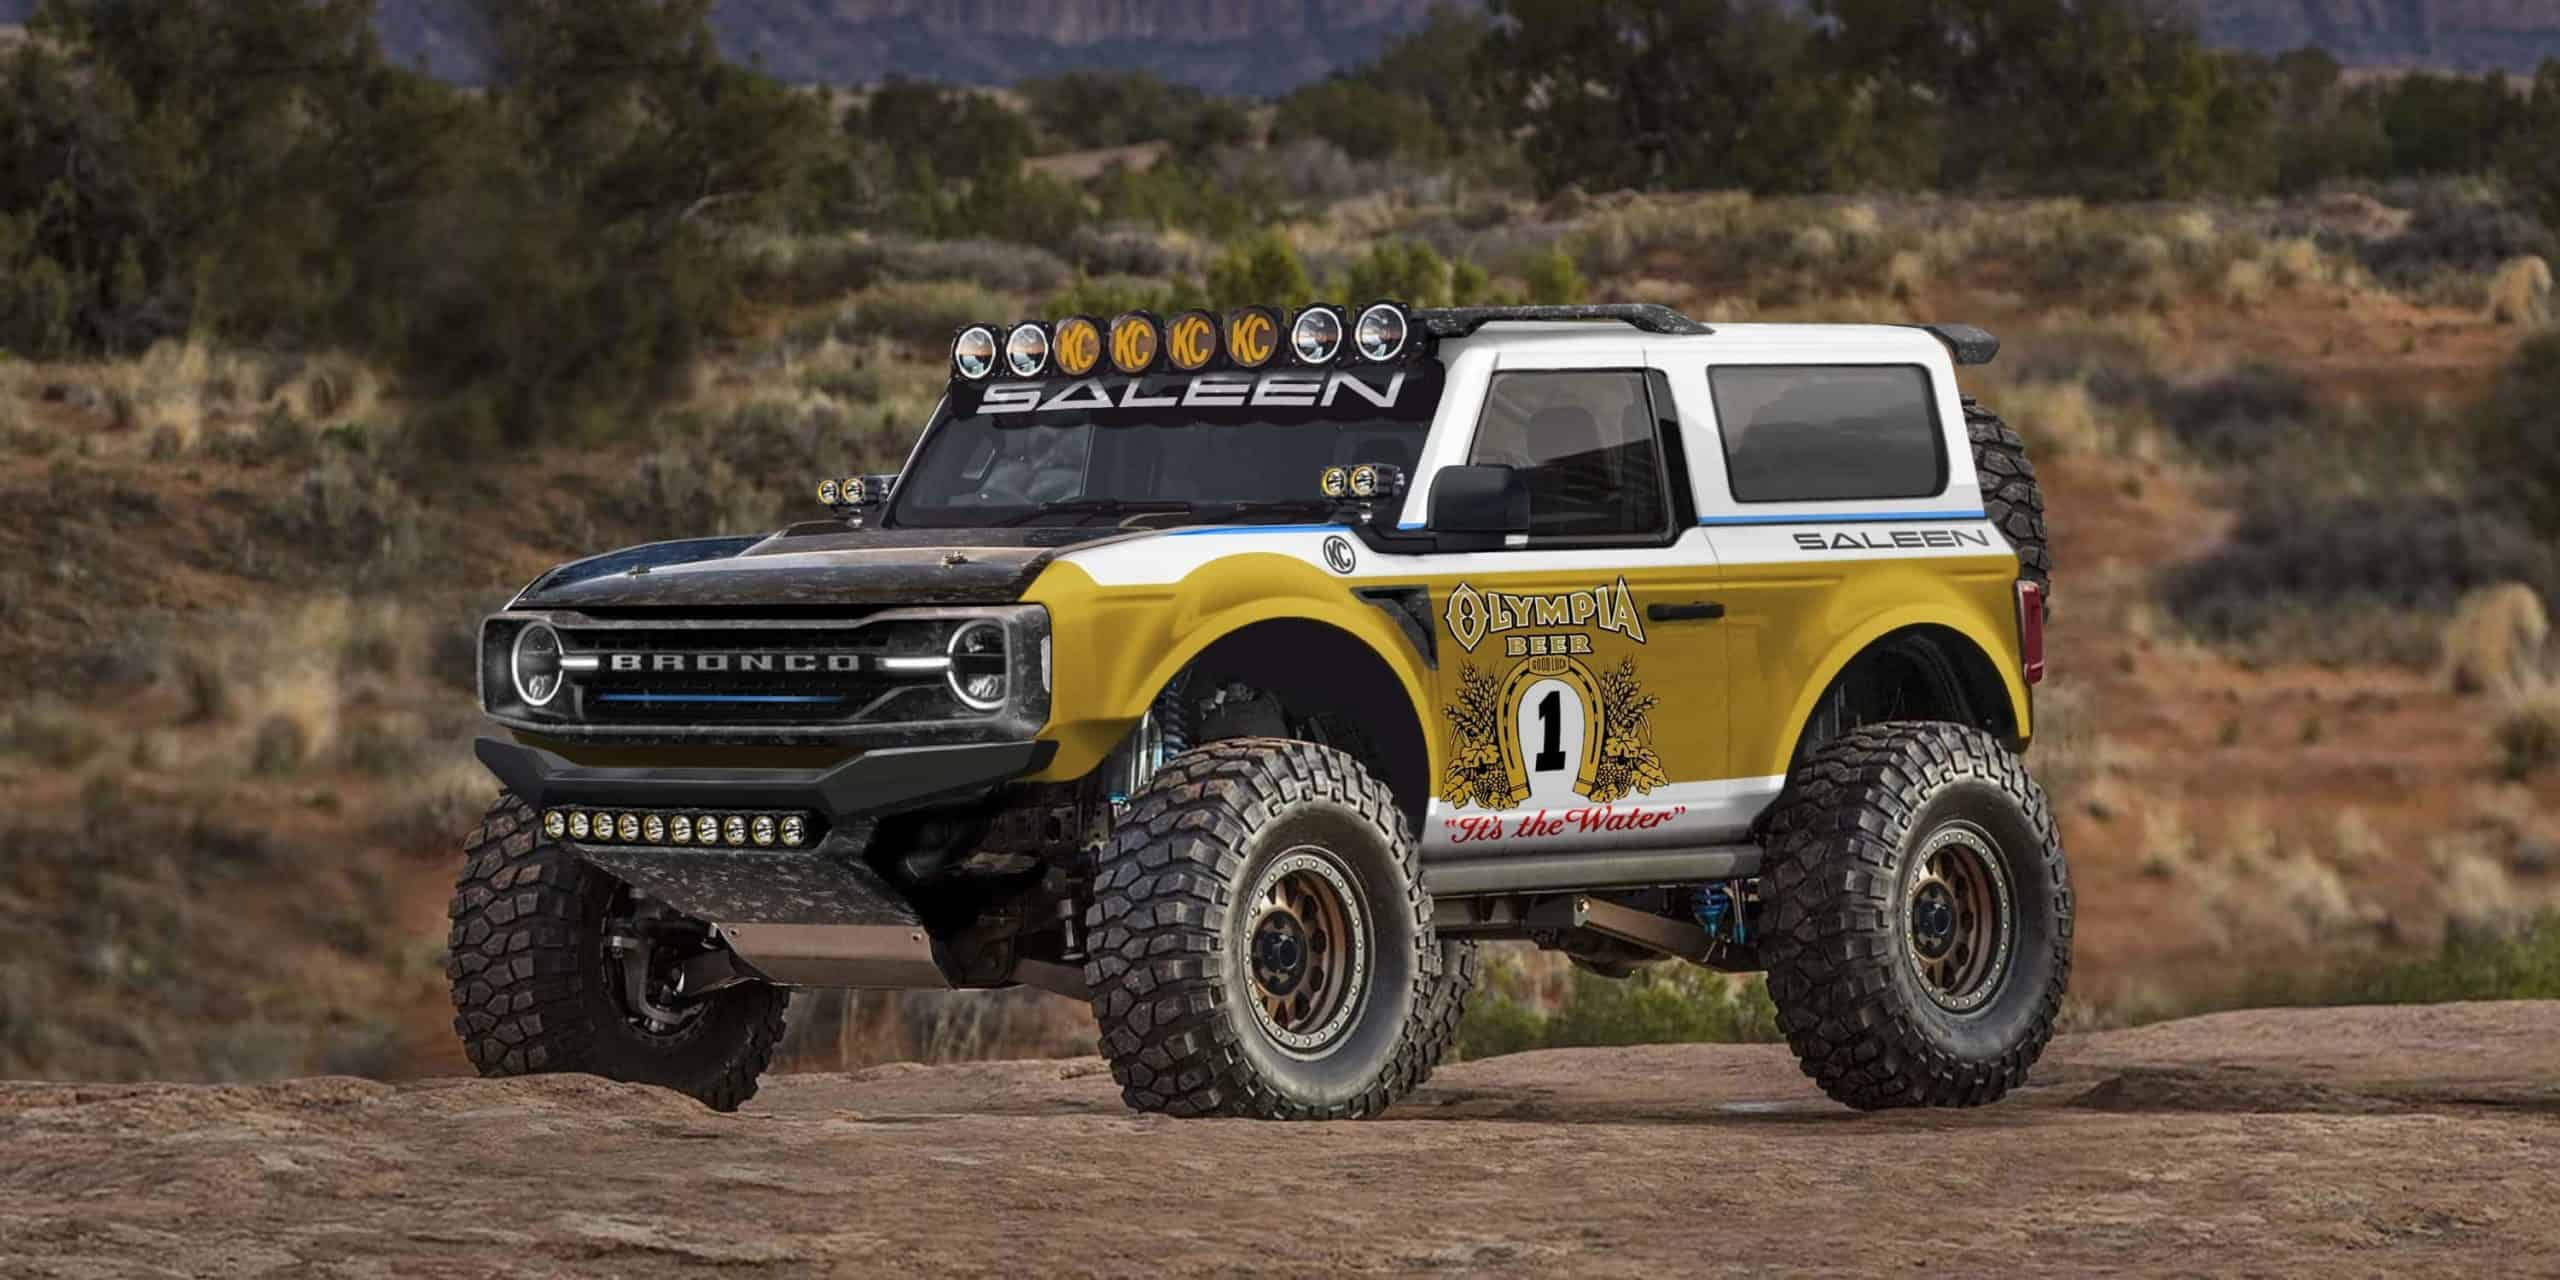 2021 Saleen Big Oly Bronco render